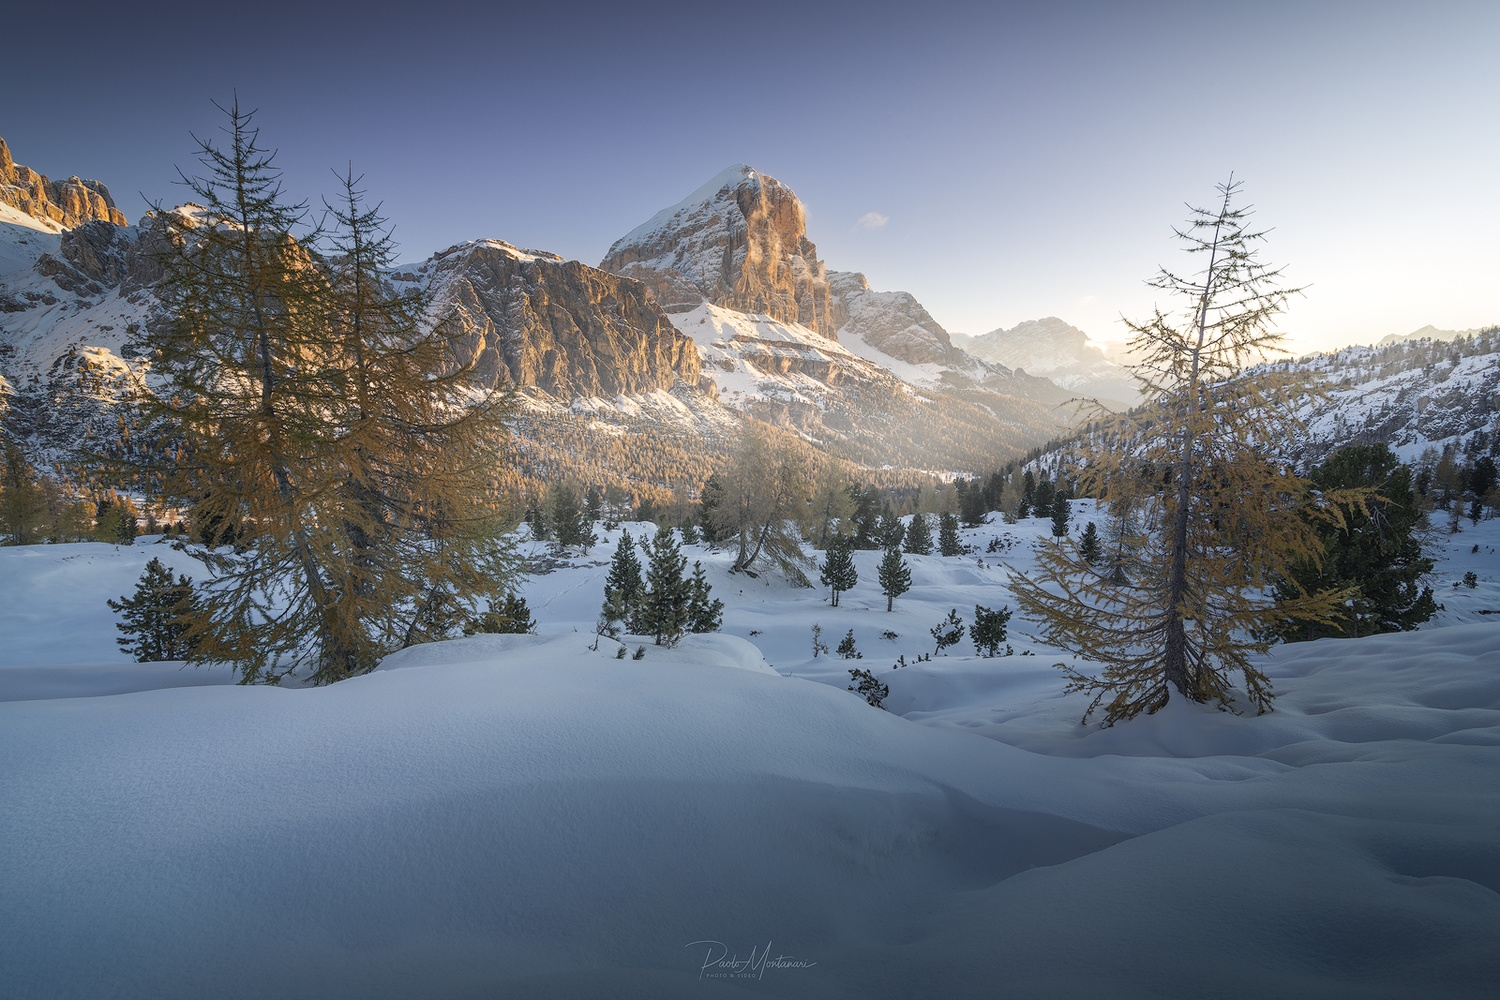 Winter is Coming by Paolo Montanari